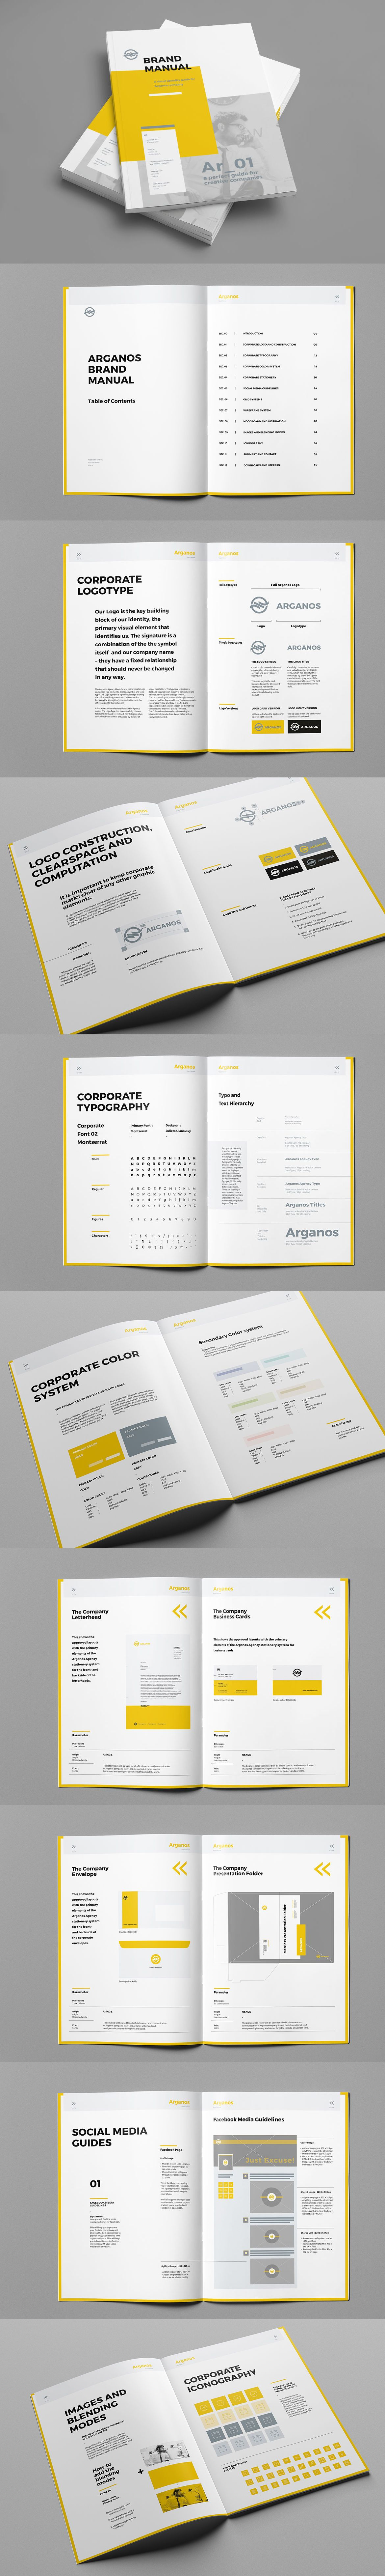 Brand Manual Template InDesign INDD - 48 Pages, A4 | PORTADA ...